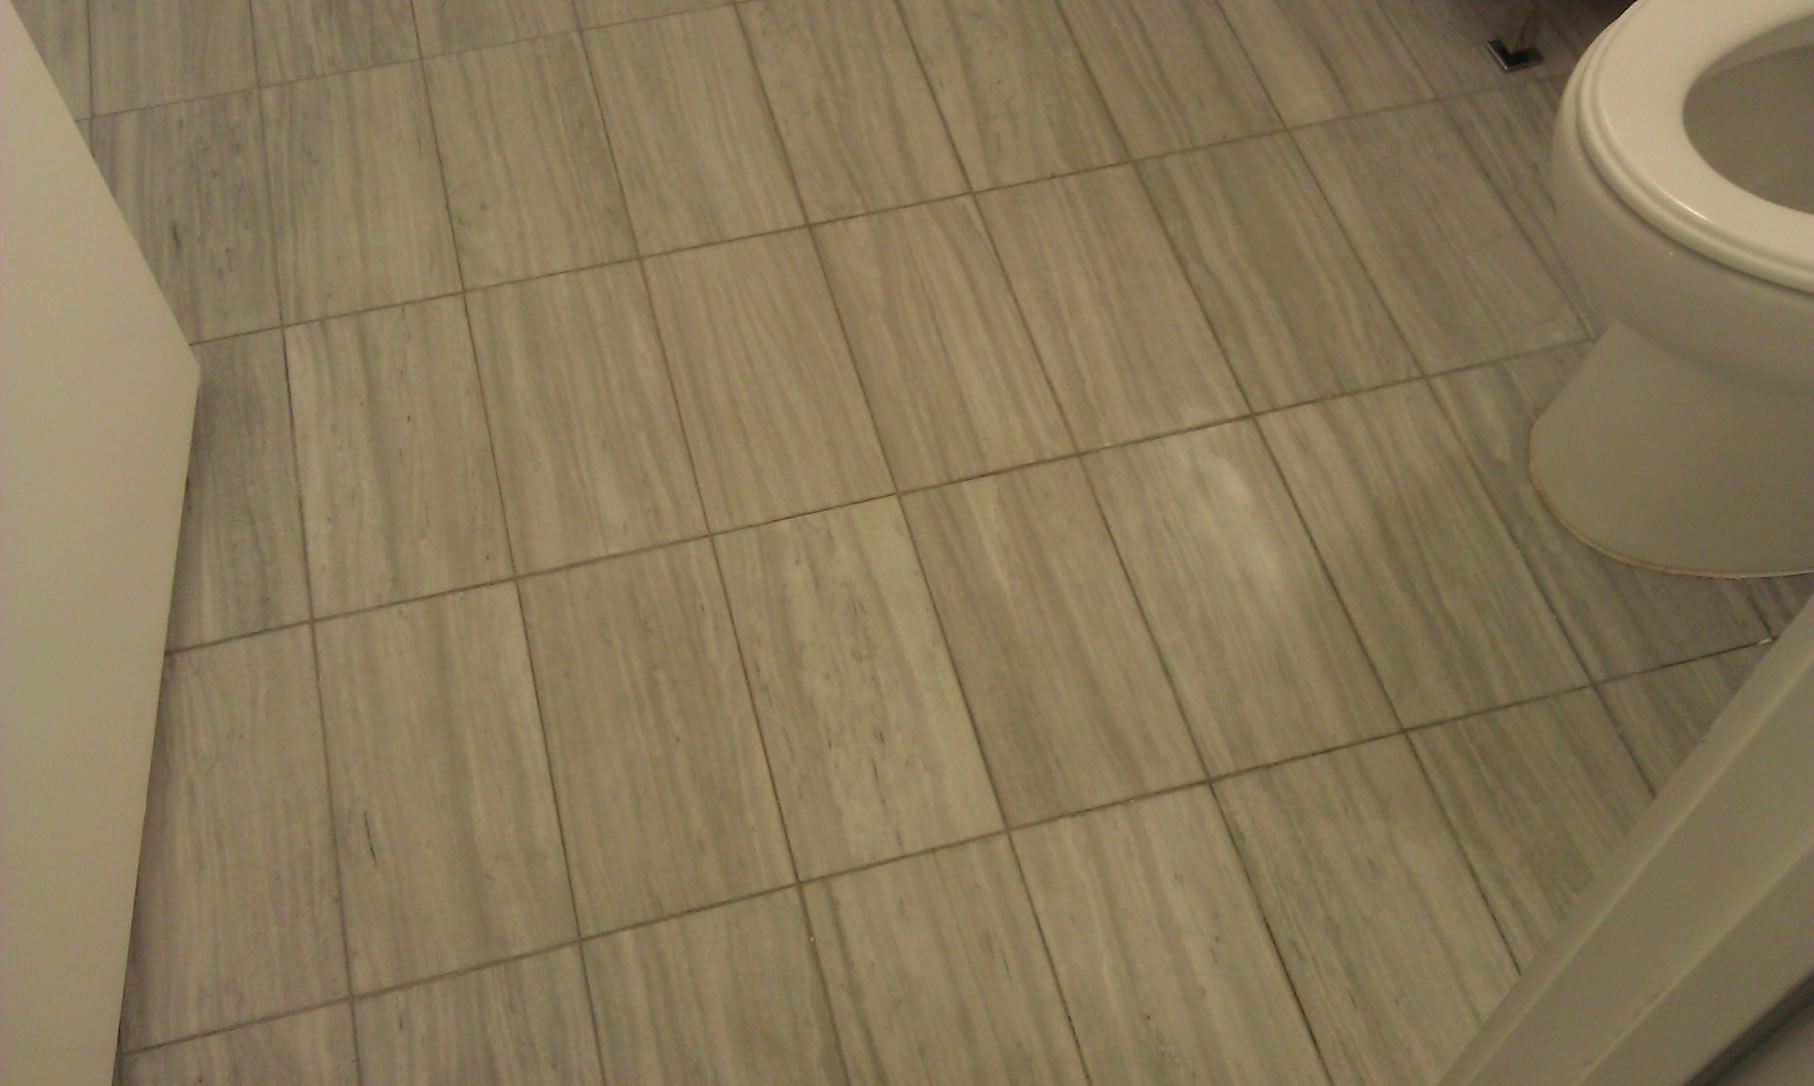 tiled-floor-bathroom-before